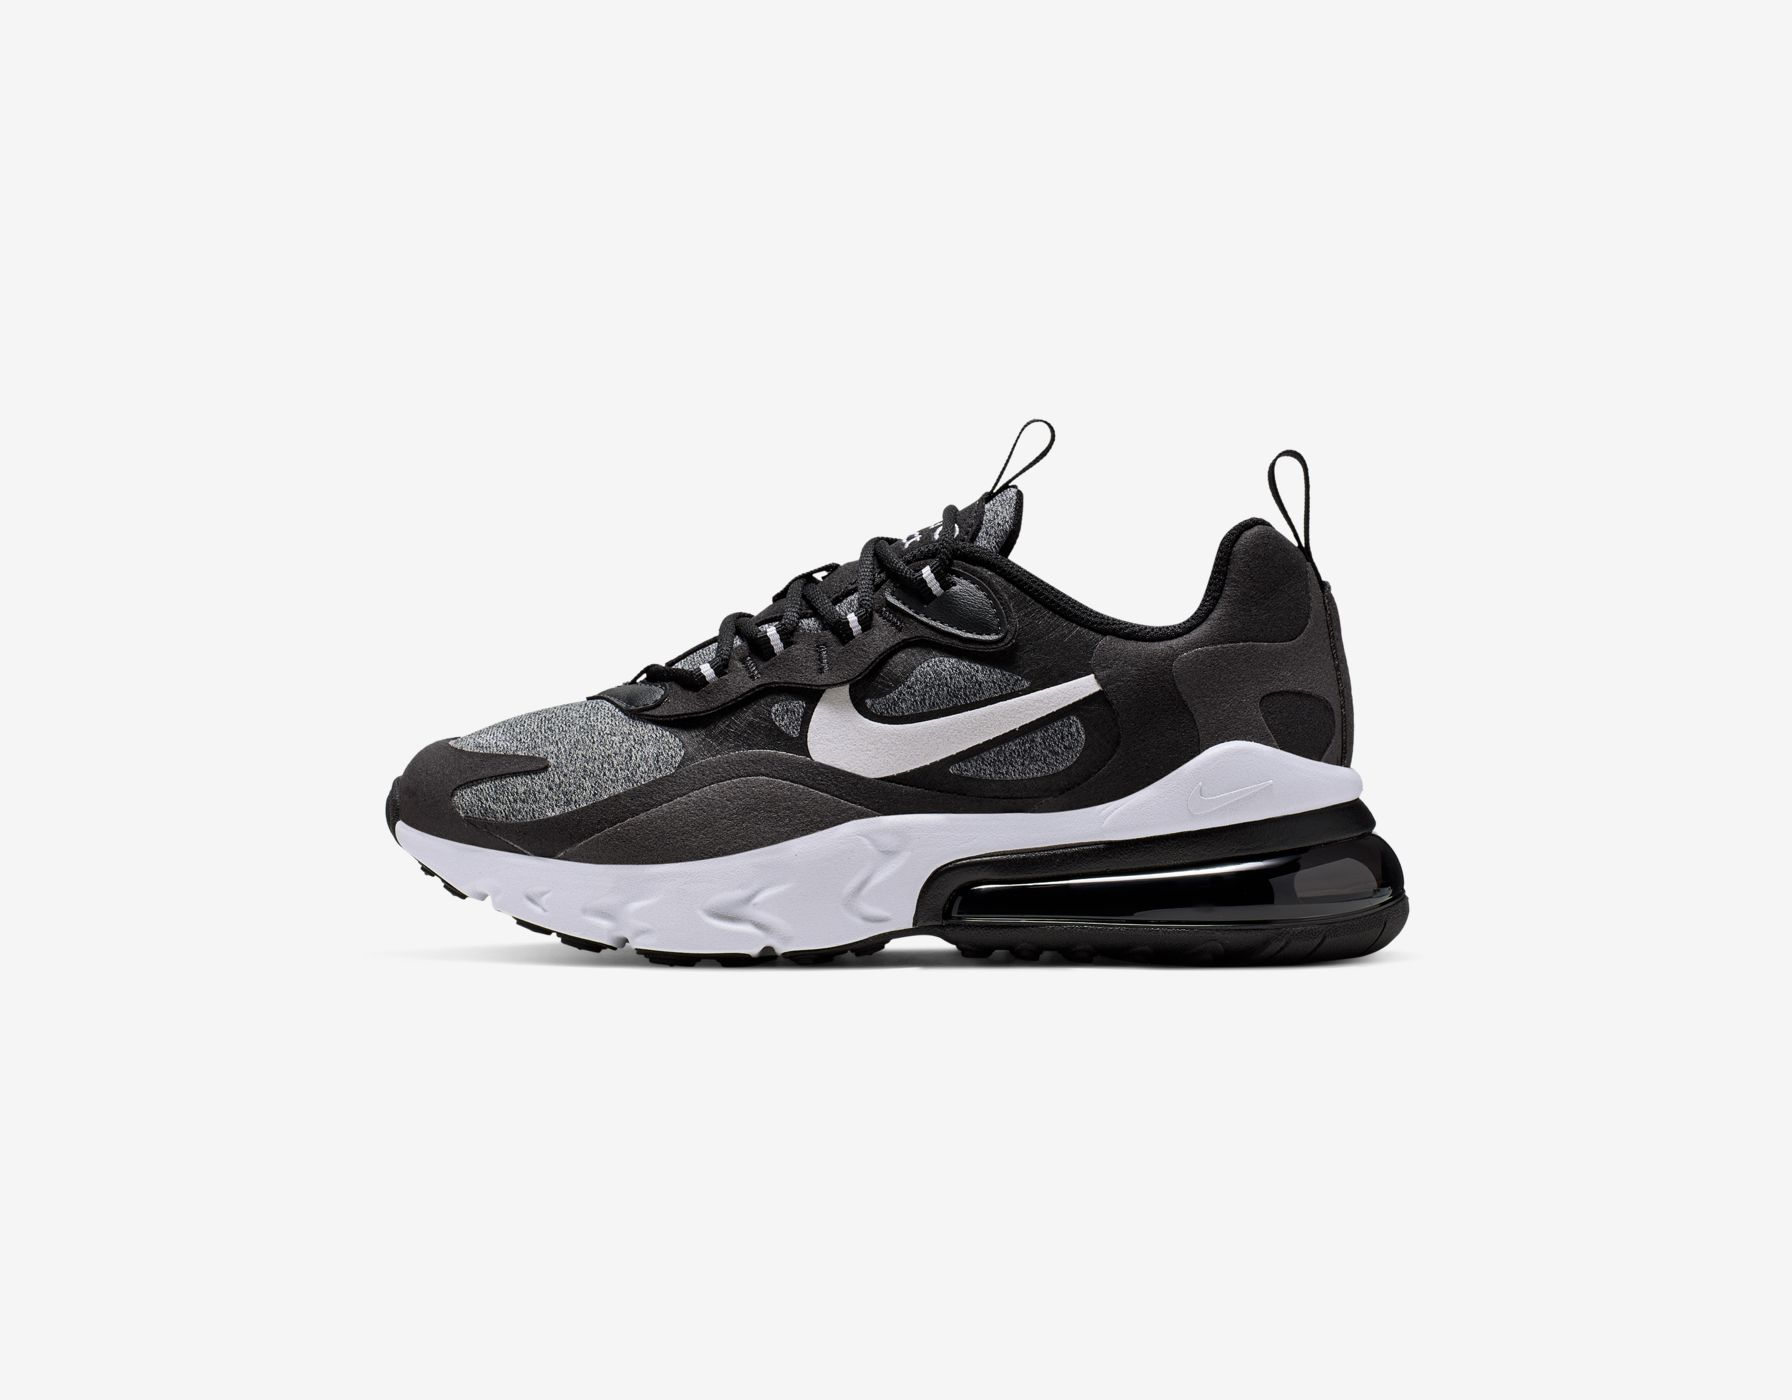 36d9c8f9b5fb4 Kids' Air Max 270 React 'Optical'